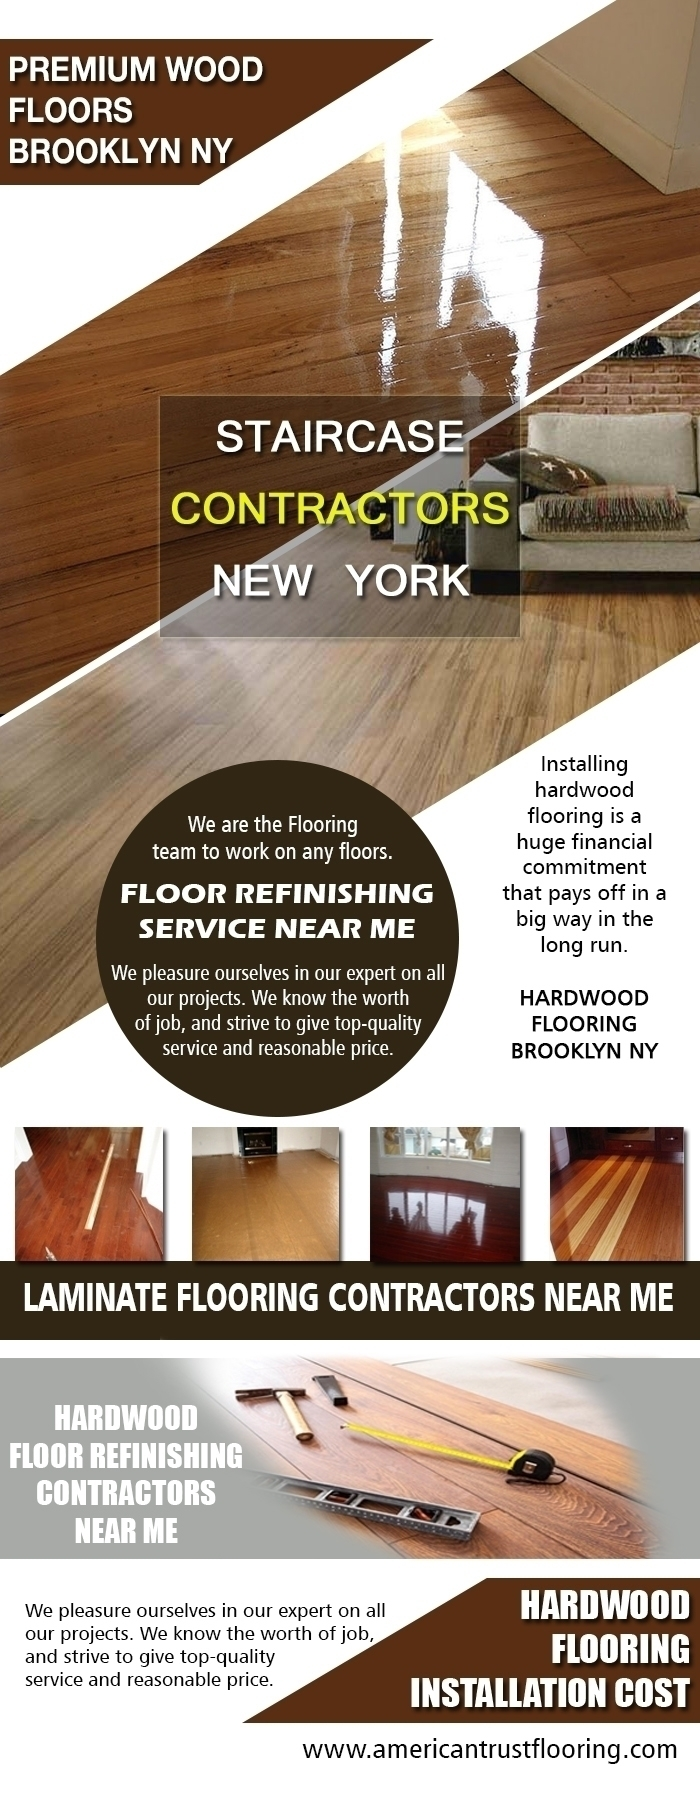 Website: Premium Wood Floors Br - woodfloorsnyc | ello